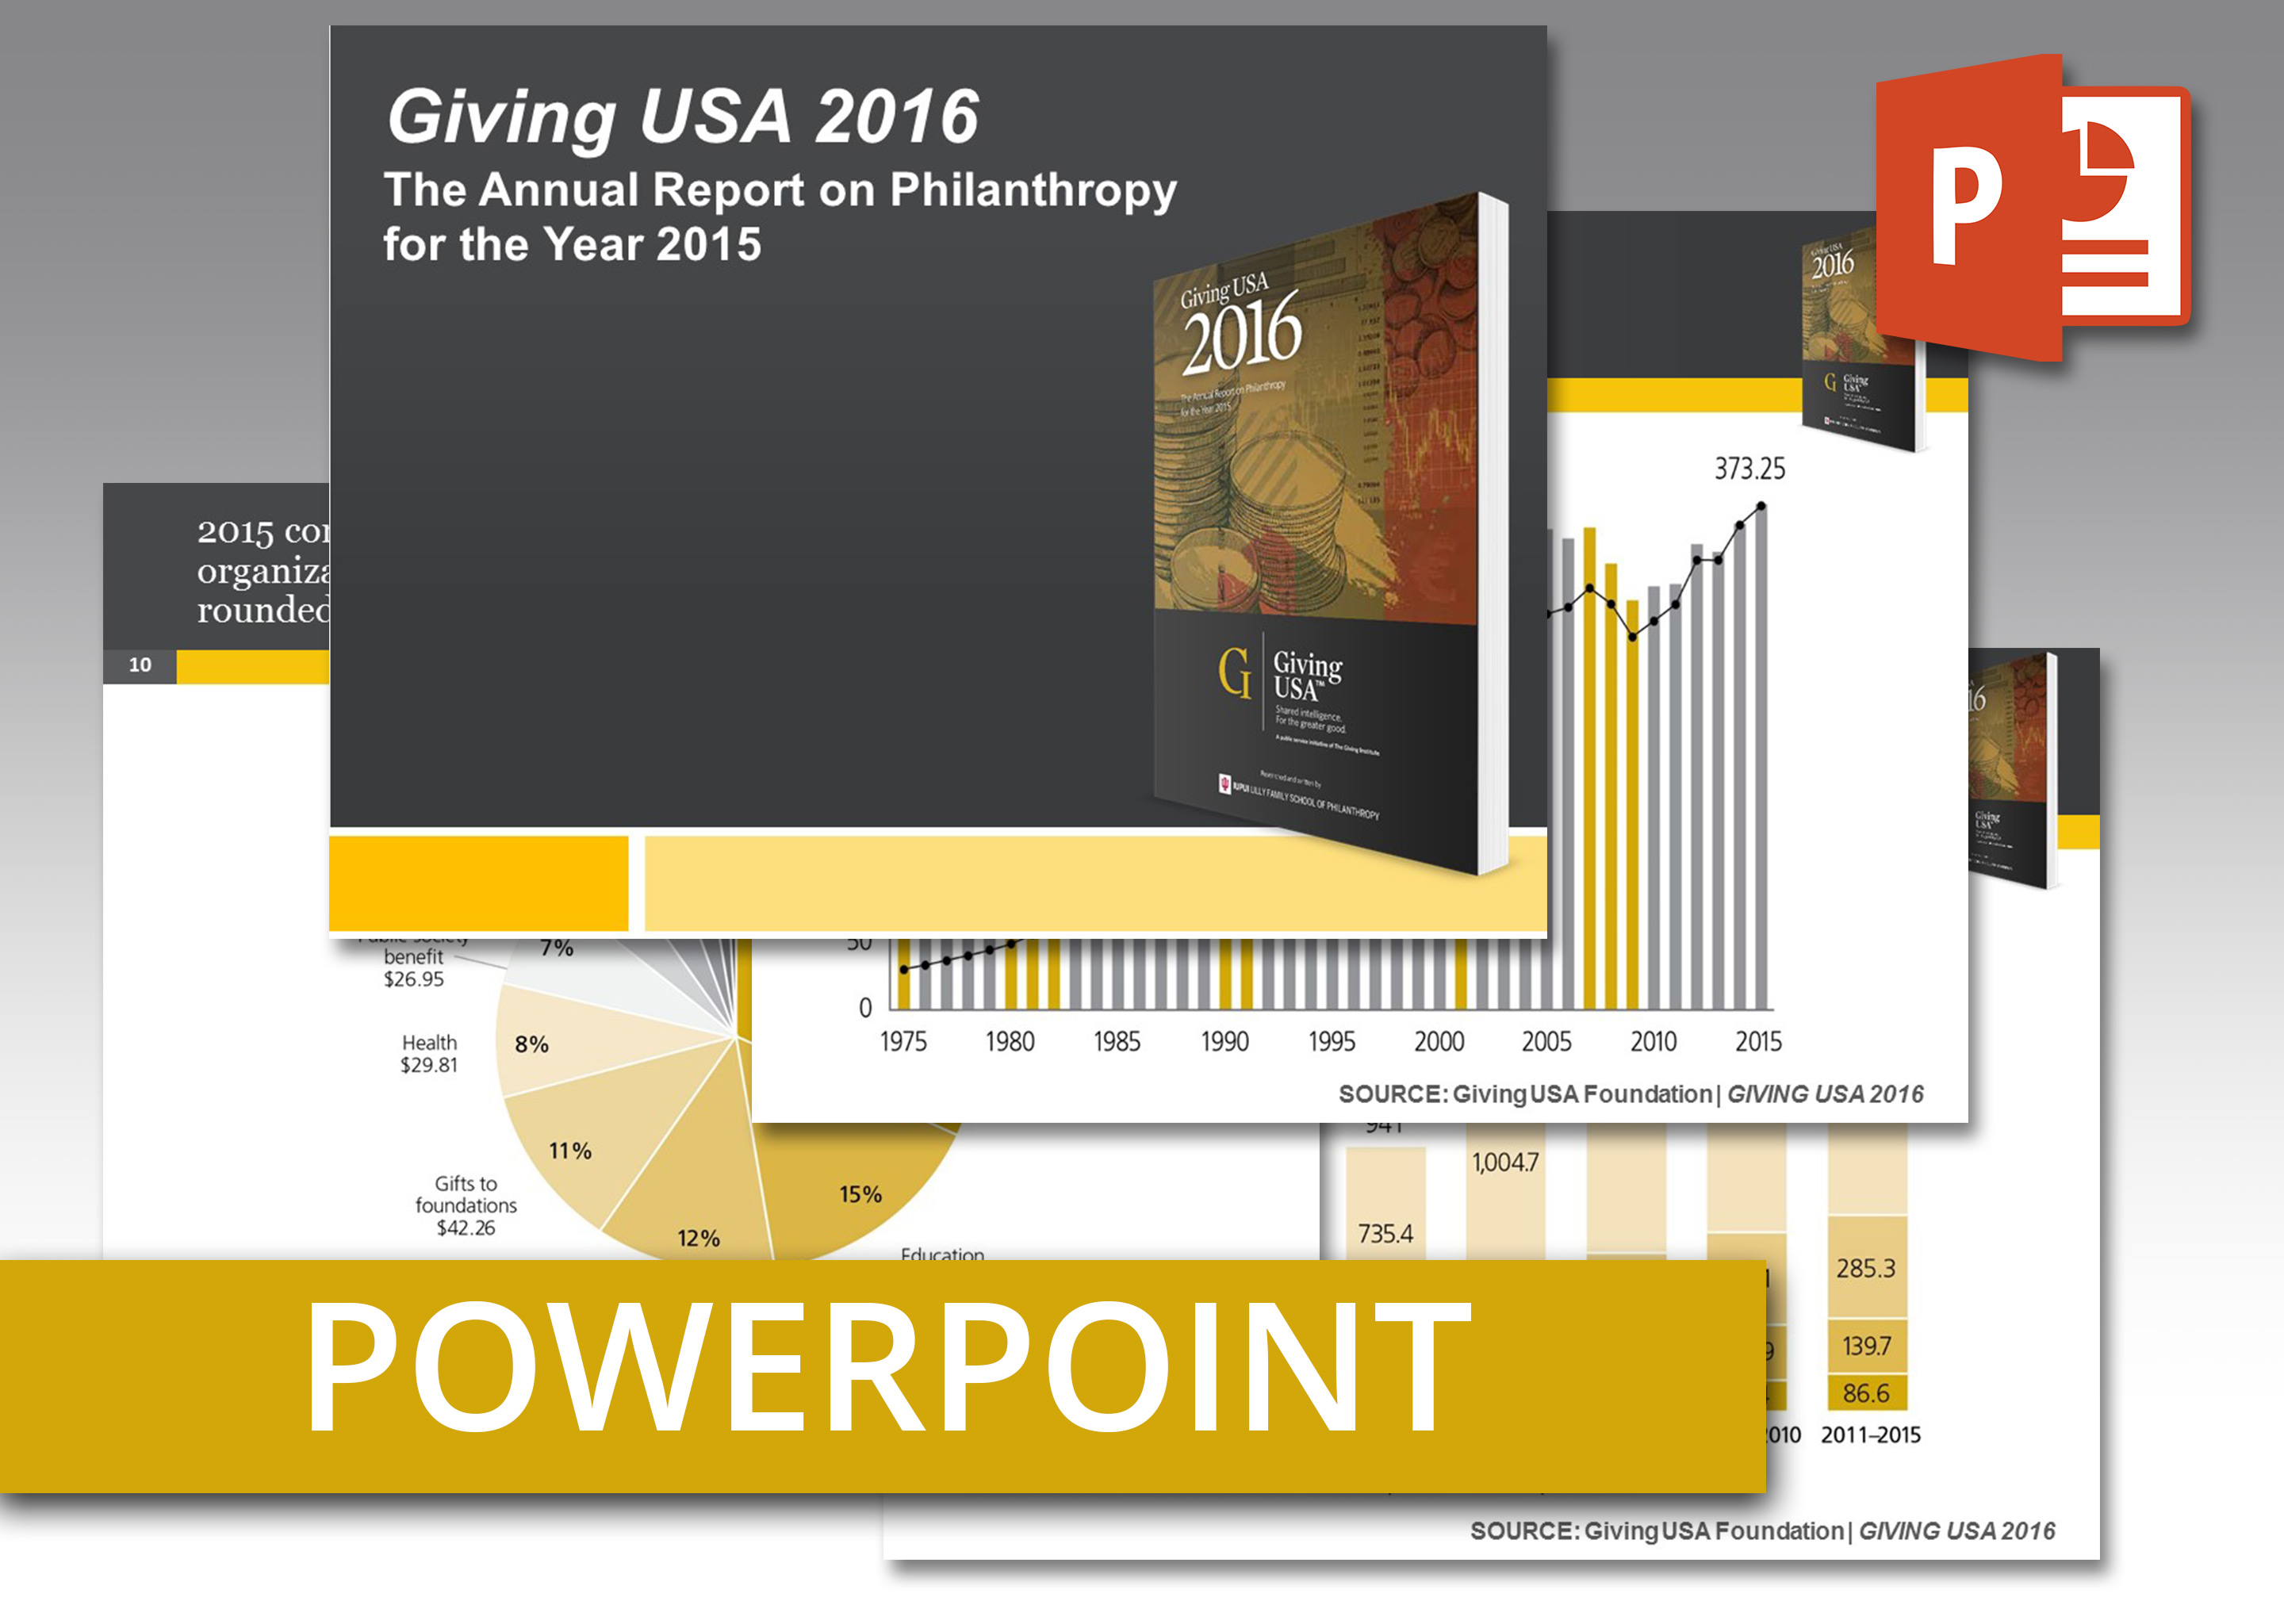 Coolmathgamesus  Picturesque Giving Usa  Powerpoint An Easytouse Presentation Of Report  With Excellent Giving Usa  Powerpoint An Easytouse Presentation Of Report Findings Including Talking Points With Breathtaking Abstract Powerpoint Backgrounds Also Timeline Examples Powerpoint In Addition Powerpoint Demonstration And Area Of A Circle Powerpoint As Well As Awesome Powerpoint Template Additionally Timeline Template Powerpoint  From Givingusaorg With Coolmathgamesus  Excellent Giving Usa  Powerpoint An Easytouse Presentation Of Report  With Breathtaking Giving Usa  Powerpoint An Easytouse Presentation Of Report Findings Including Talking Points And Picturesque Abstract Powerpoint Backgrounds Also Timeline Examples Powerpoint In Addition Powerpoint Demonstration From Givingusaorg